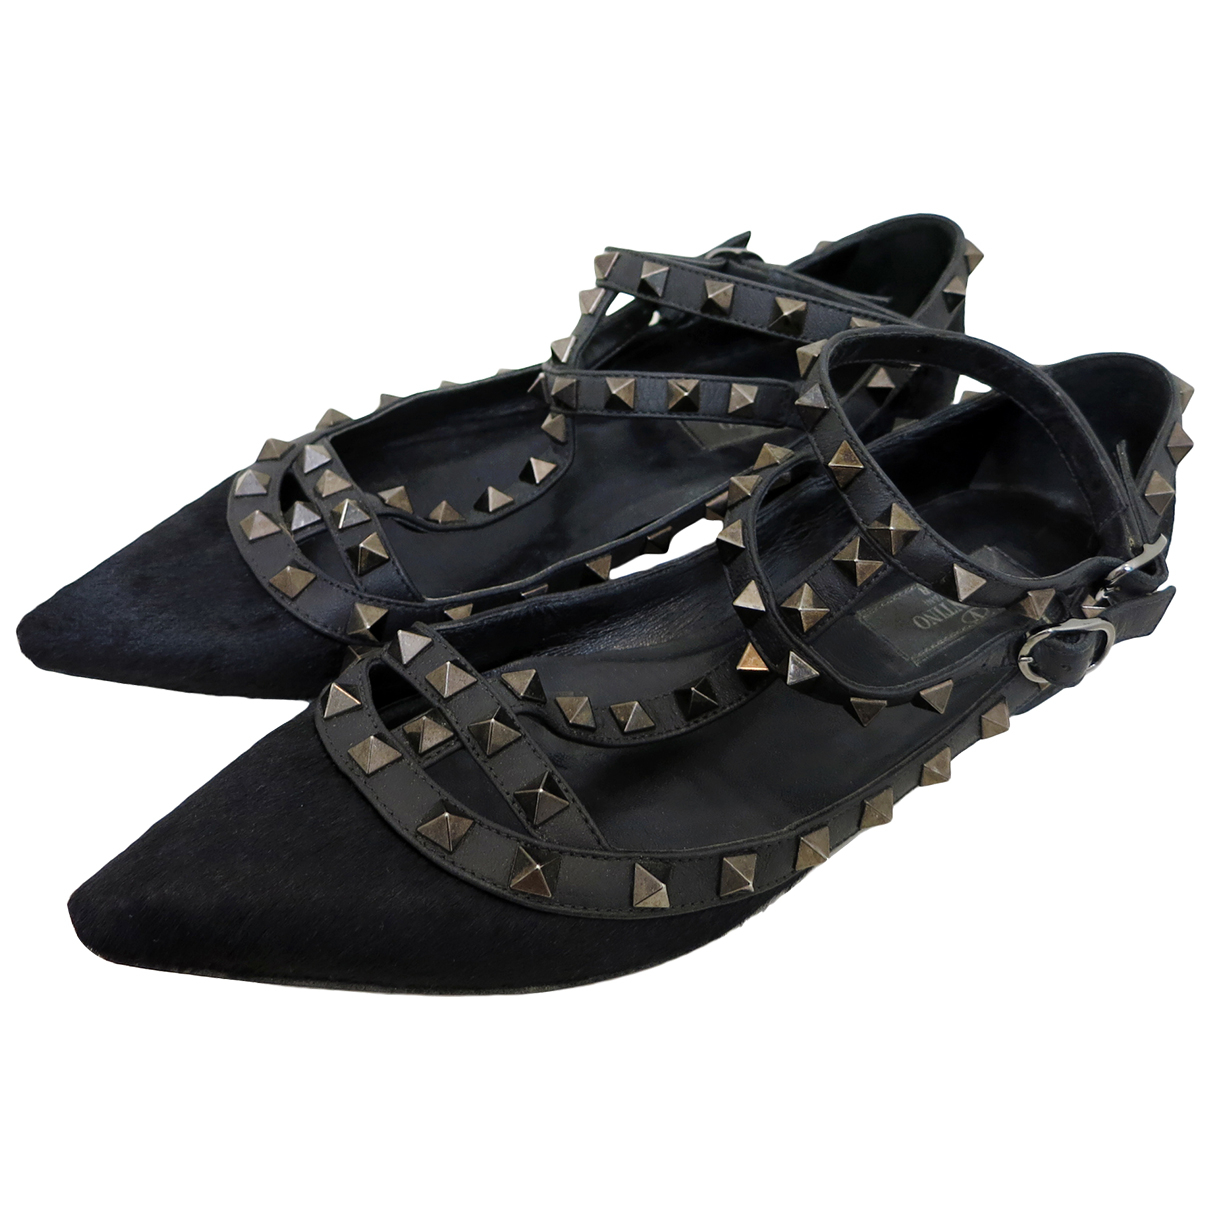 Valentino Garavani Rockstud Black Pony-style calfskin Flats for Women 37 IT